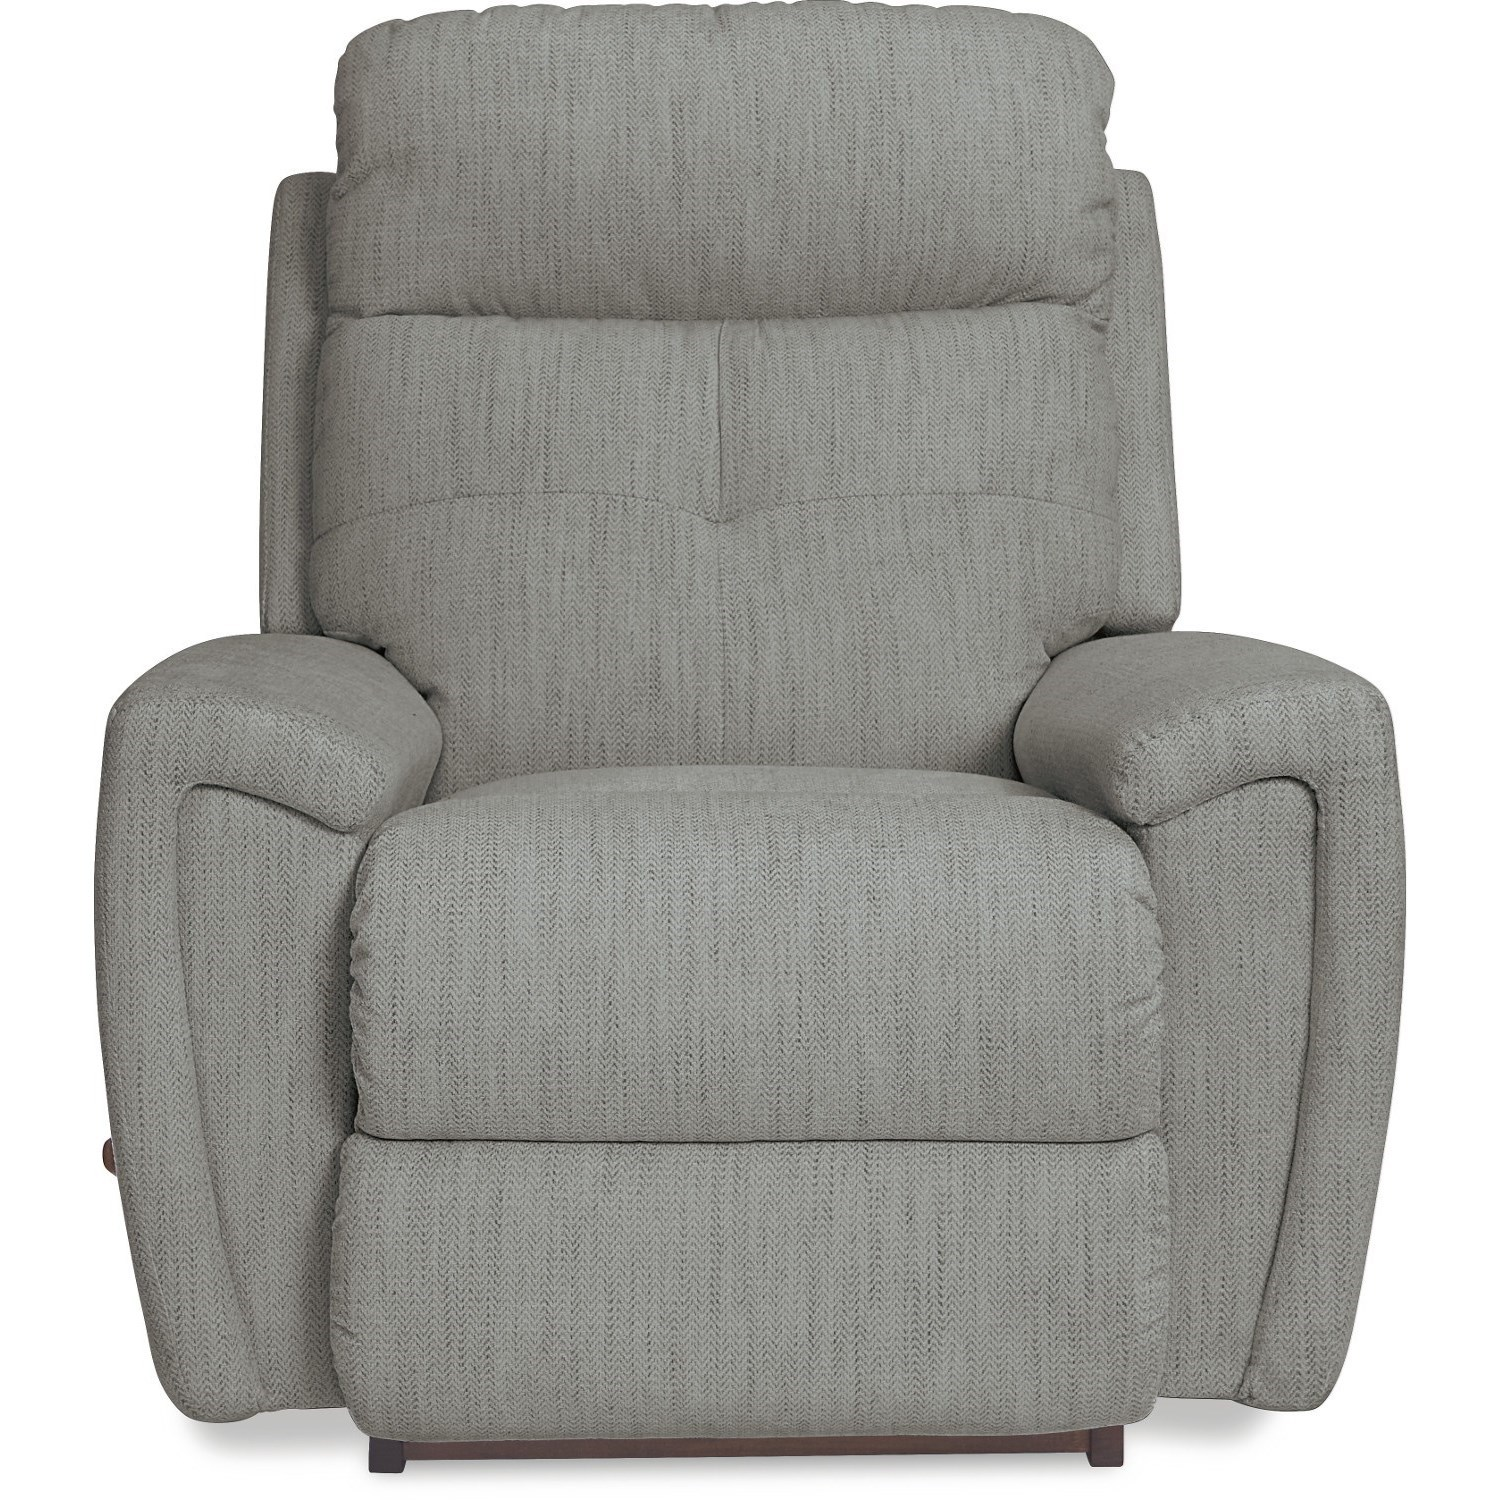 Douglas Wall Recliner by La-Z-Boy at Home Furnishings Direct